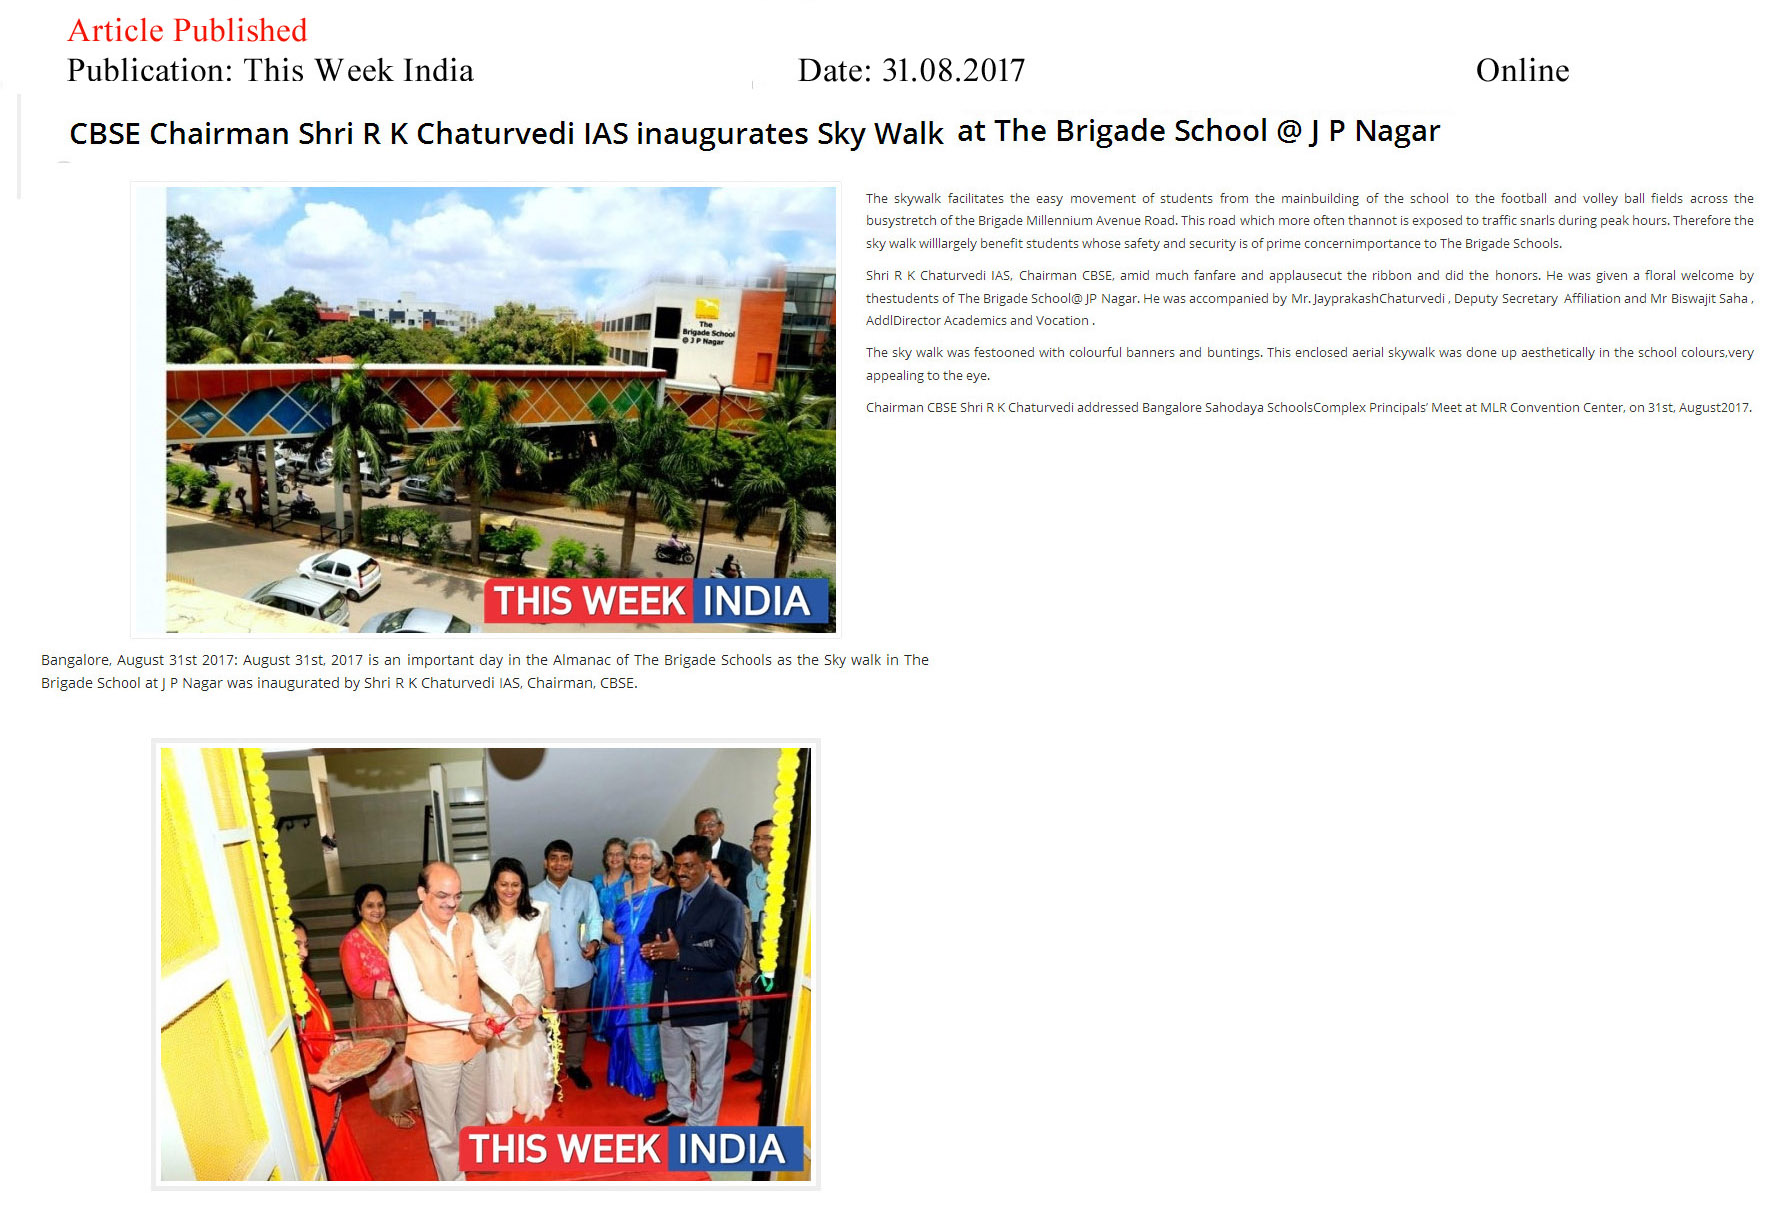 CBSE Chairman Shri R K Chaturvedi IAS inaugurates Sky Walk at The Brigade School @ J P Nagar—This Week India–Online